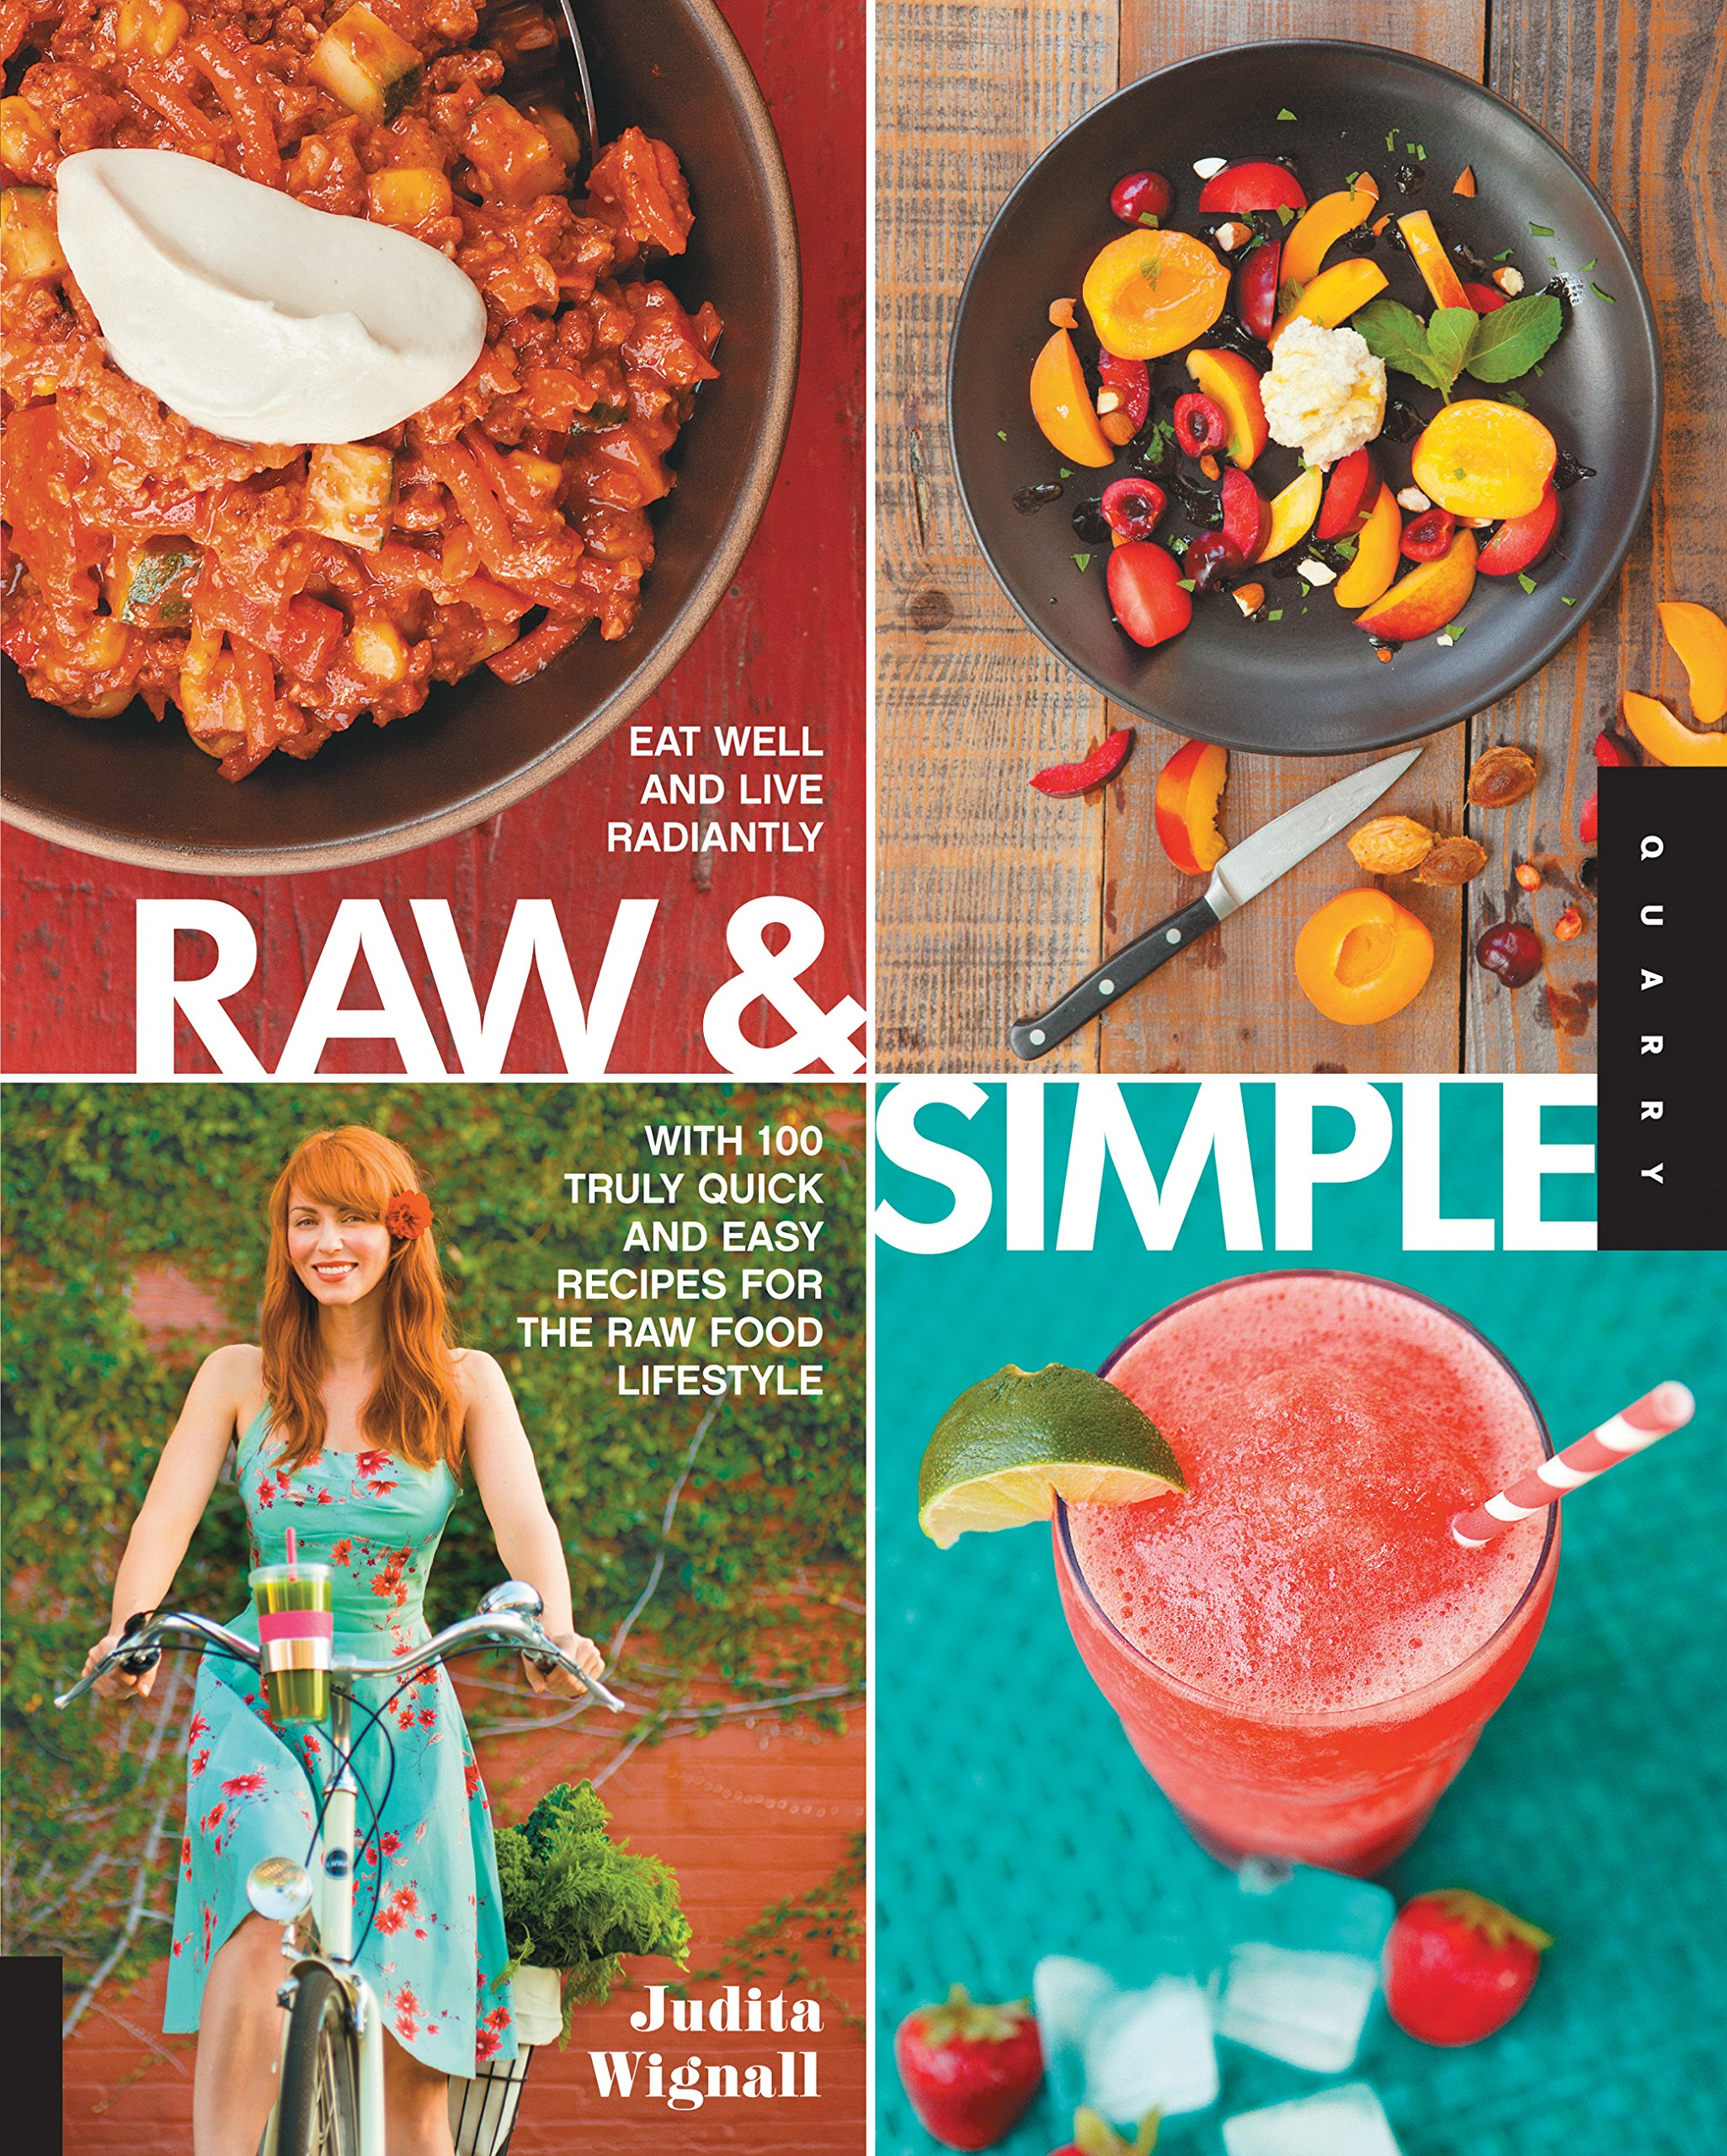 Raw and simple eat well and live radiantly with 100 truly quick and raw and simple eat well and live radiantly with 100 truly quick and easy recipes for the raw food lifestyle judita wignall 8601400987247 amazon forumfinder Images